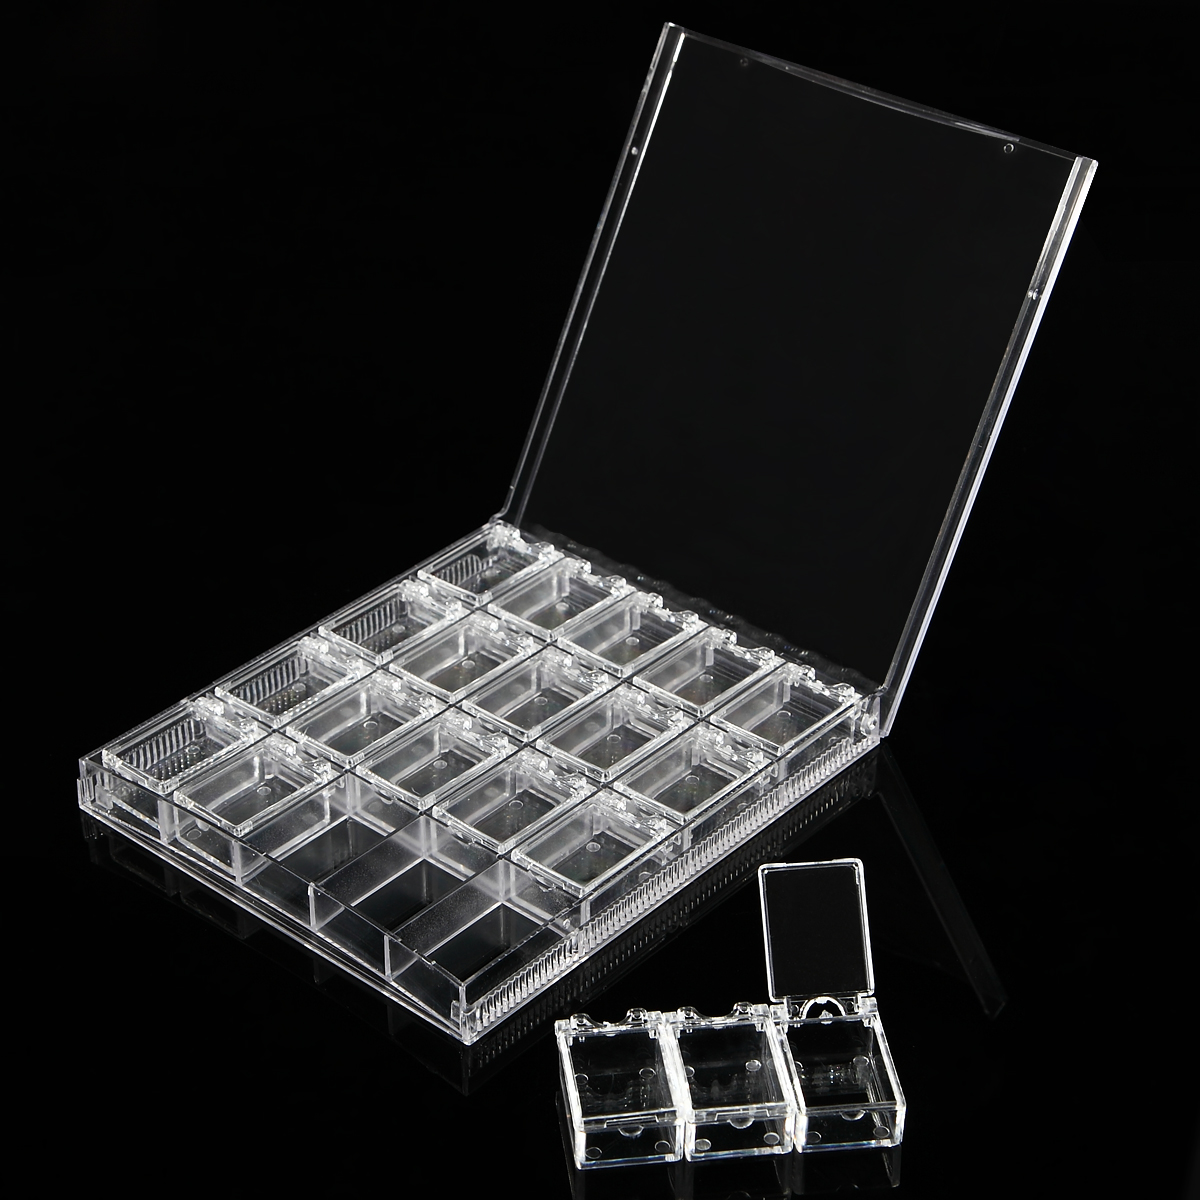 20 Grids Clear Acrylic Empty Storage Box Nail Art Rhinestone Jewelry Beads Display Removable Case Organizer Holder clear acrylic a3a4a5a6 sign display paper card label advertising holders horizontal t stands by magnet sucked on desktop 2pcs